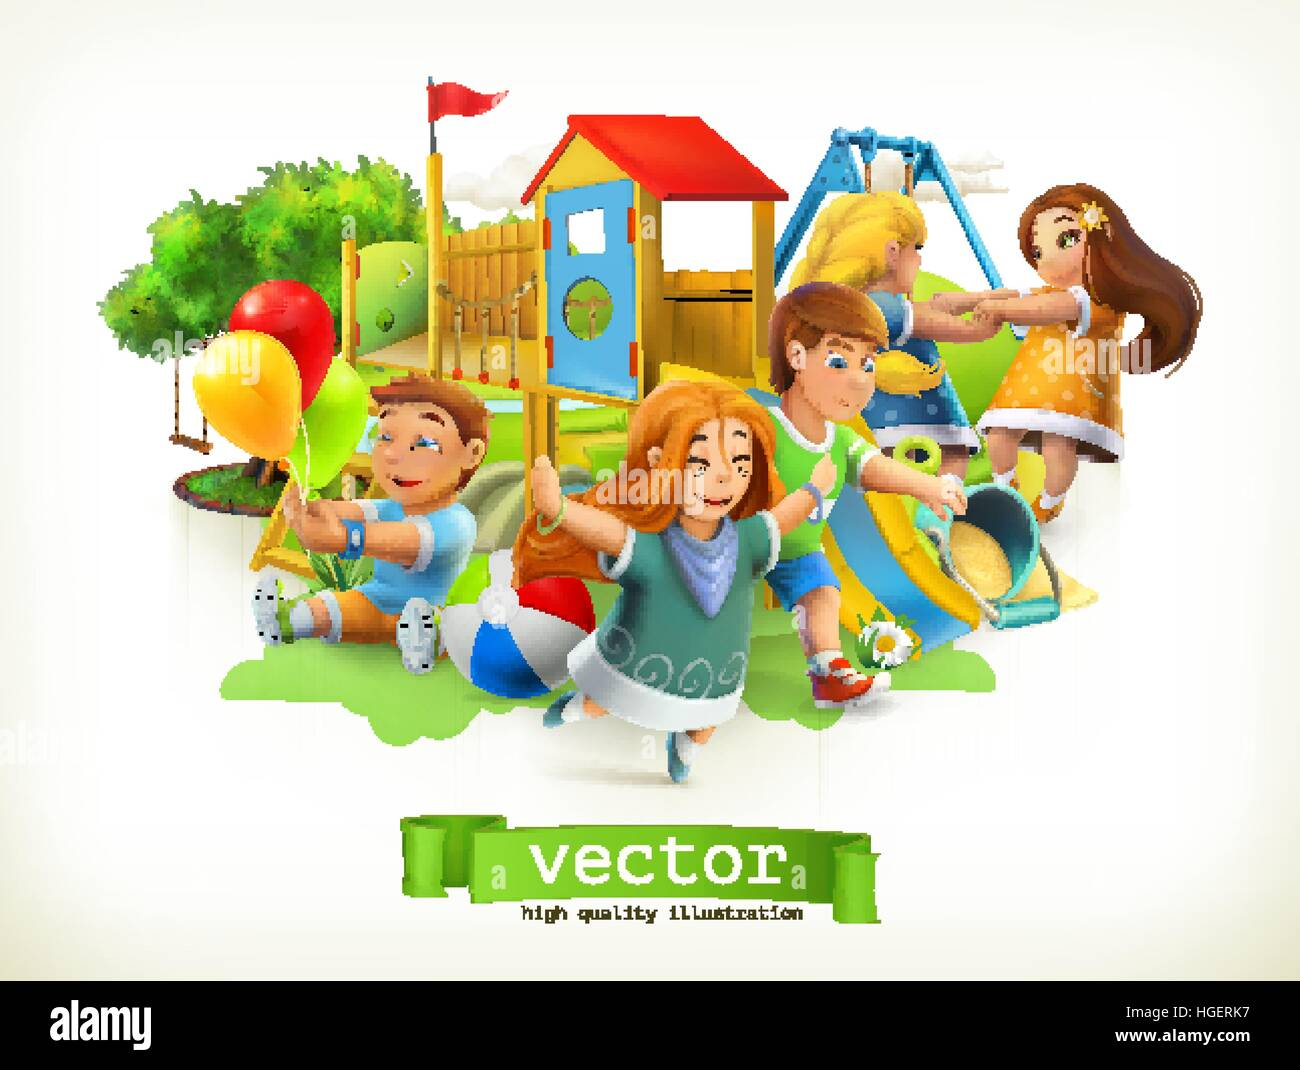 Park Kids Playground Outdoor Games 3d Vector Illustration Stock Vector Image Art Alamy